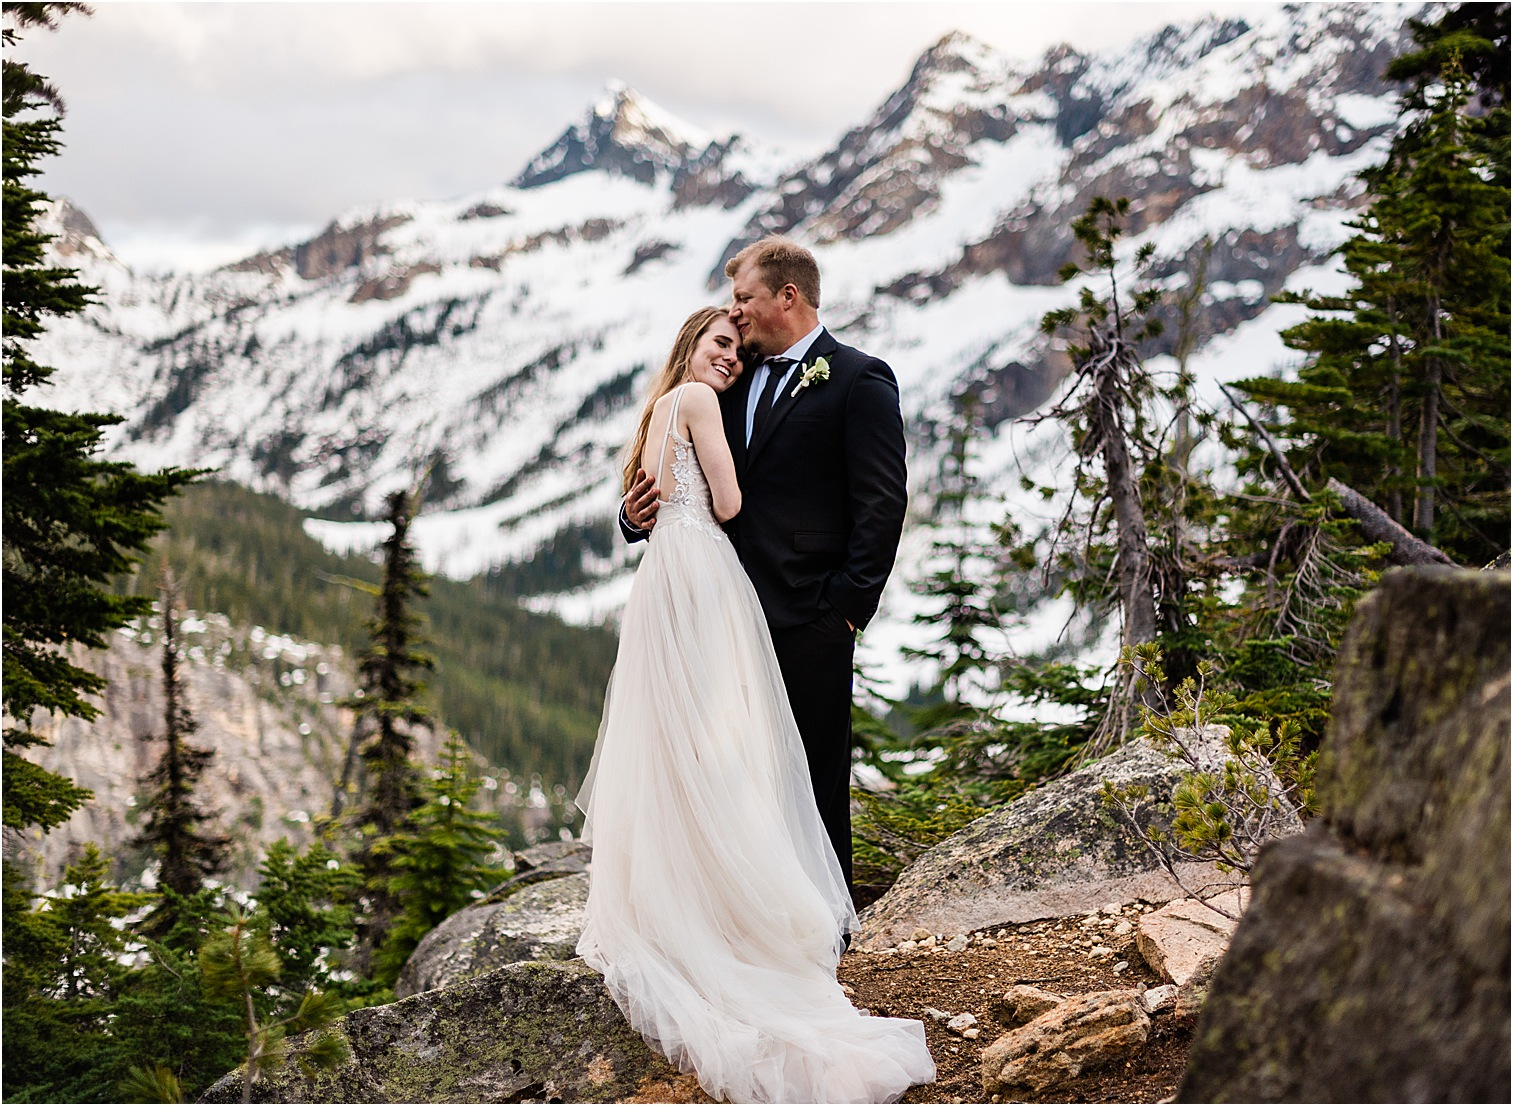 Hope & Steven enjoying a sunset dance at Washington Pass overlook during their Adventure Wedding in North Cascades National Park. Image by Forthright Photo, Seattle Wedding & Elopement Photographers